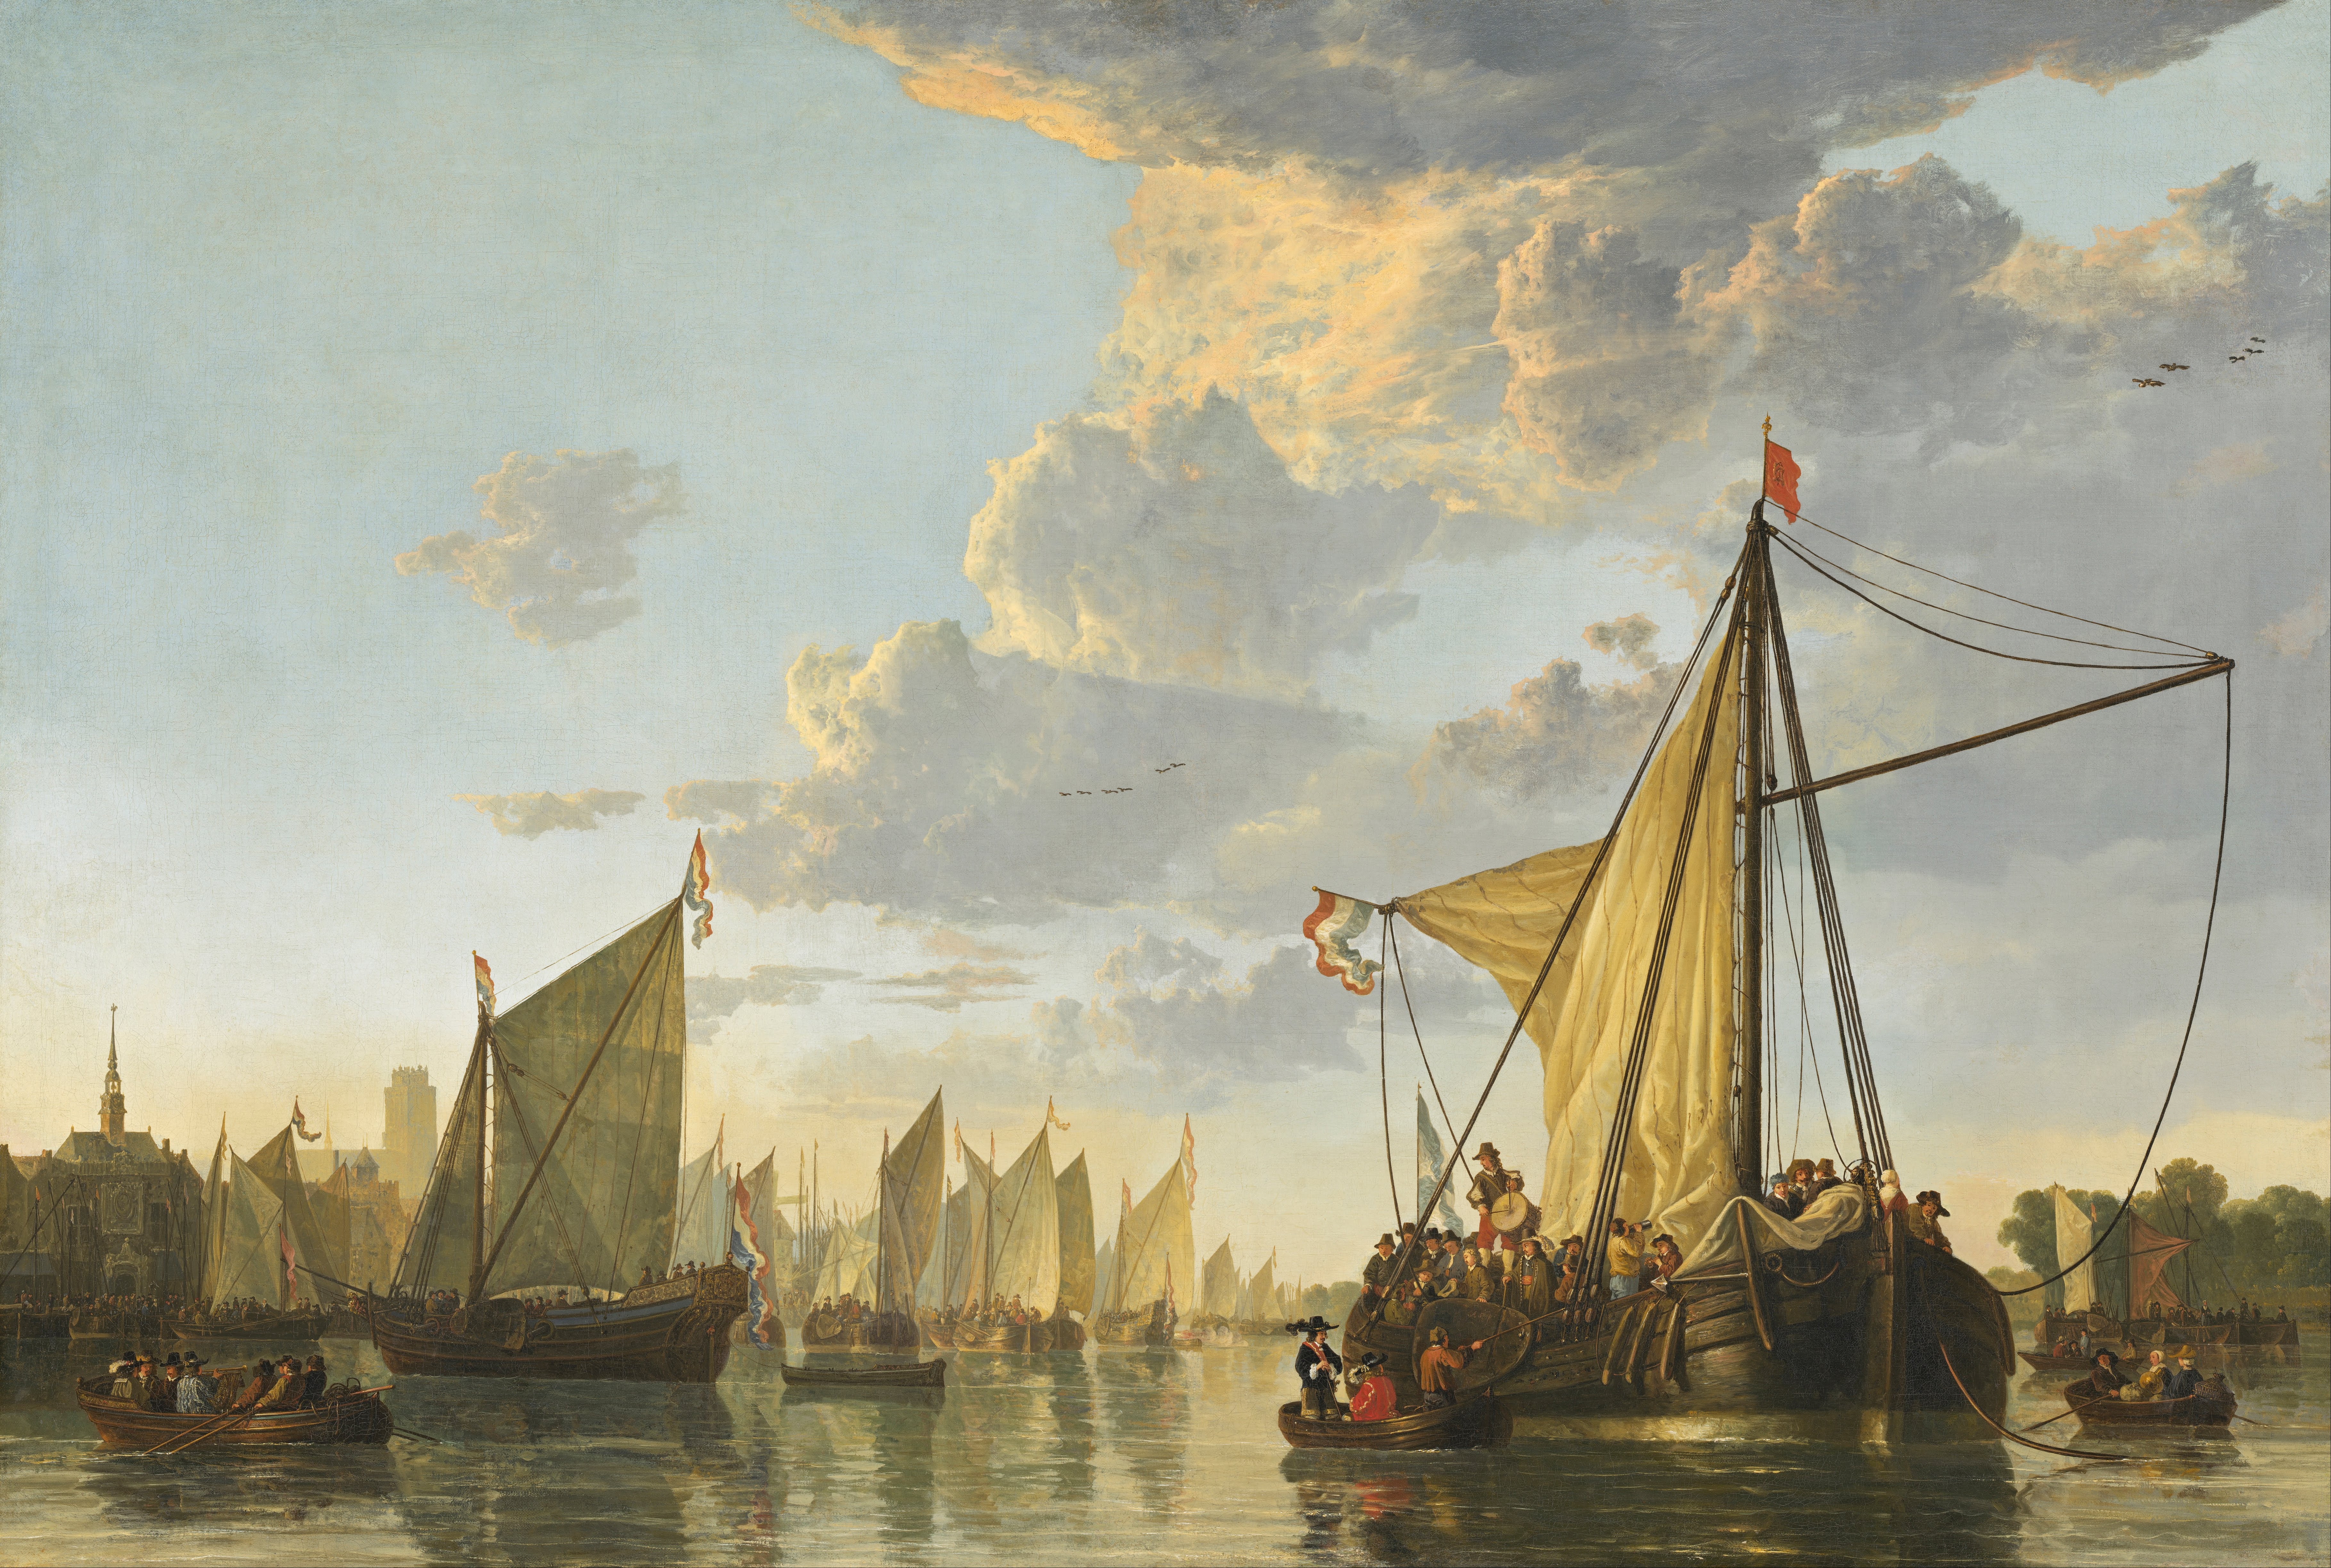 Aelbert Cuyp: The Maas at Dordrecht